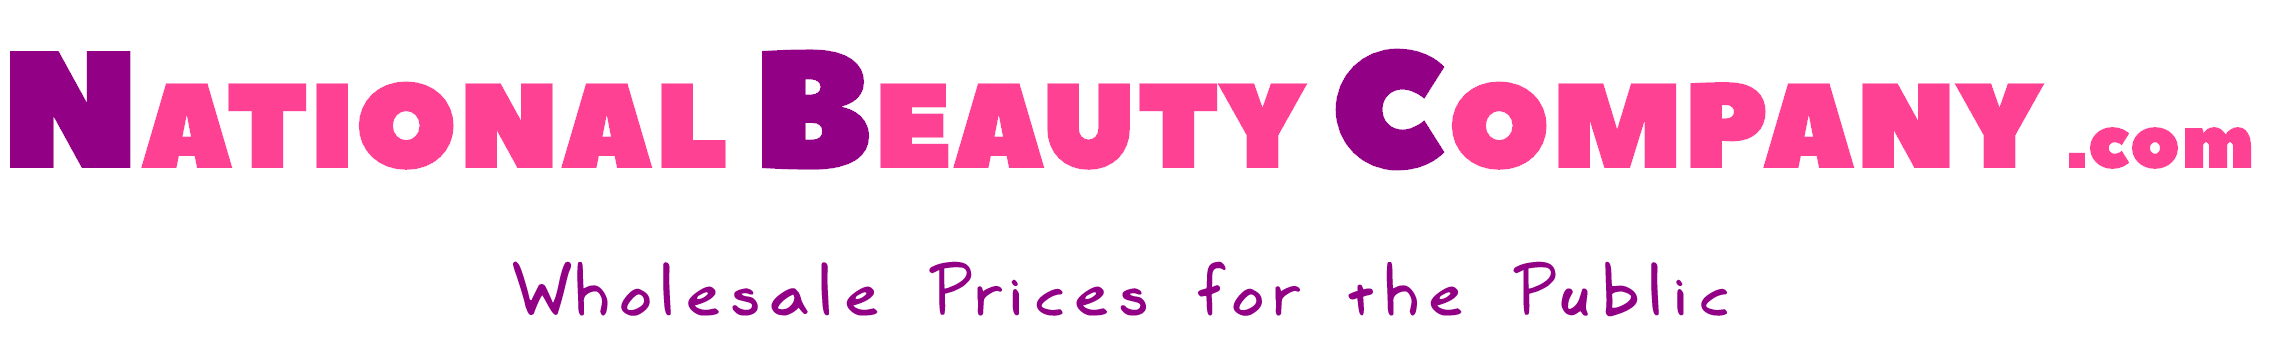 National Beauty Company